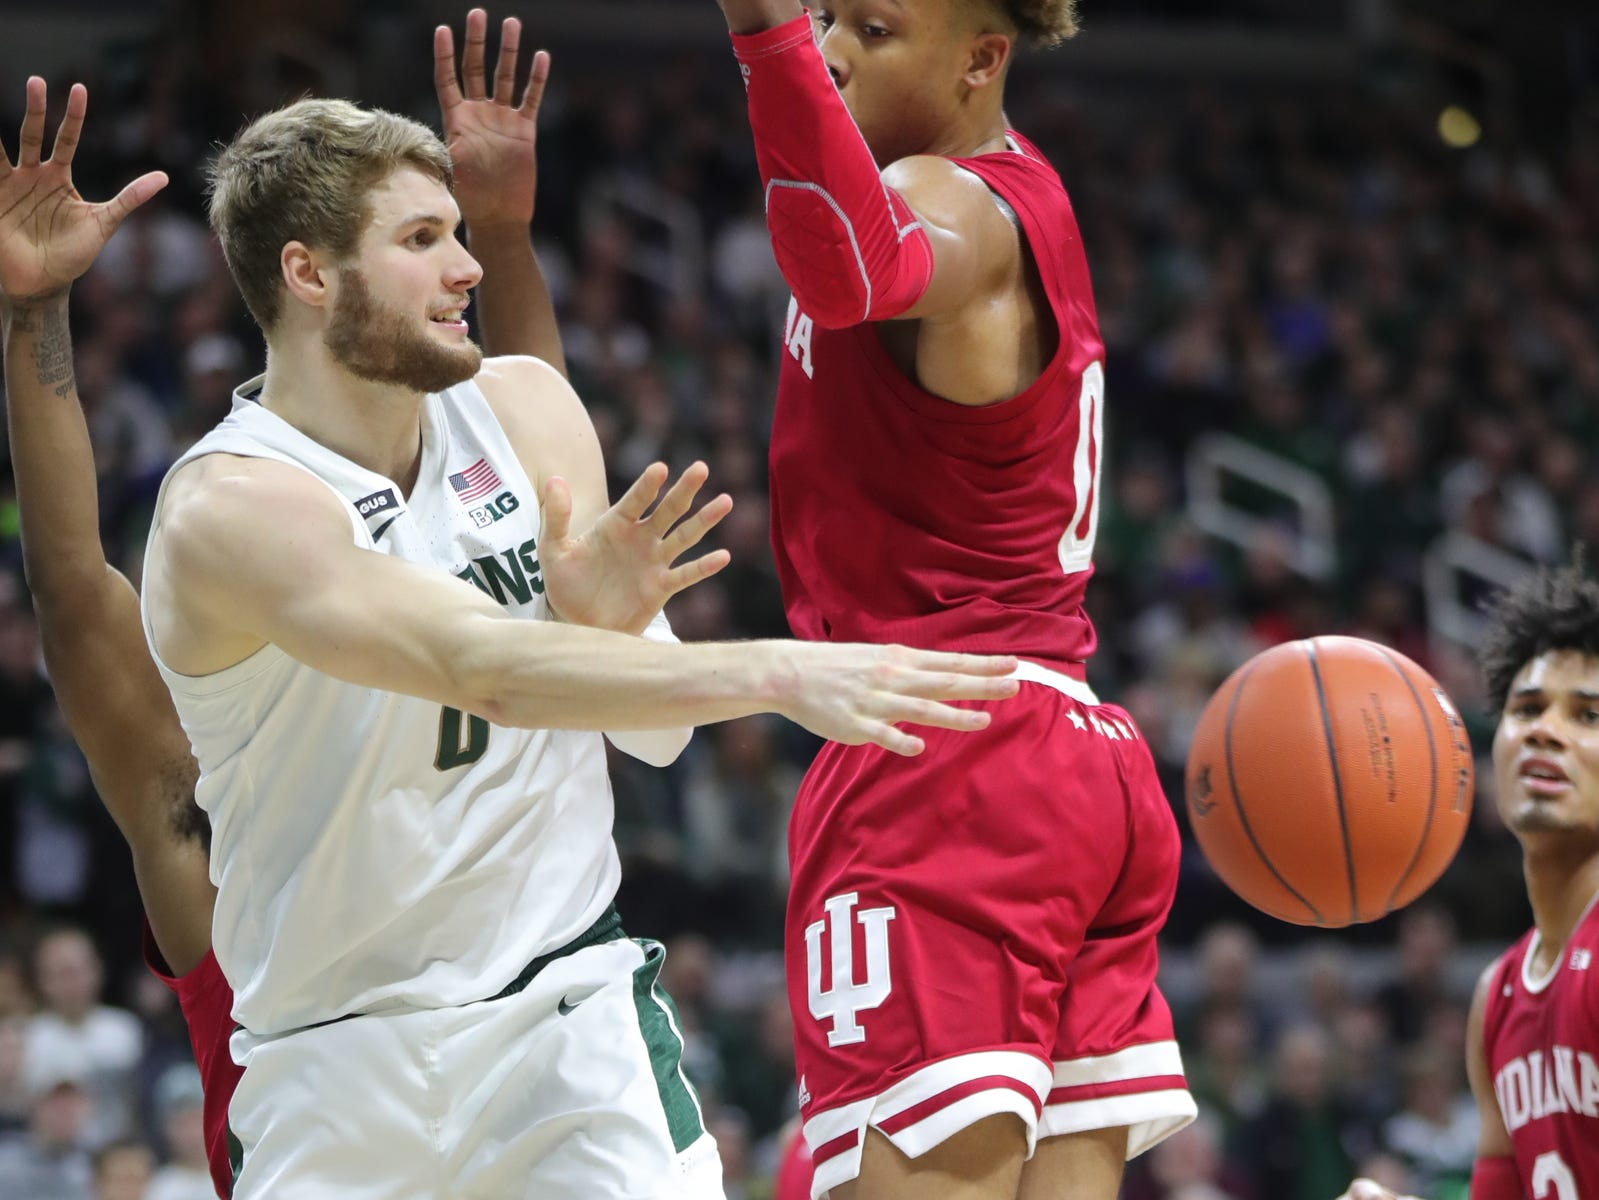 Michigan State forward Kyle Ahrens  passes against Indiana guard Romeo Langford during first half action Saturday, Feb. 2, 2019 at the Breslin Center in East Lansing, Mich.